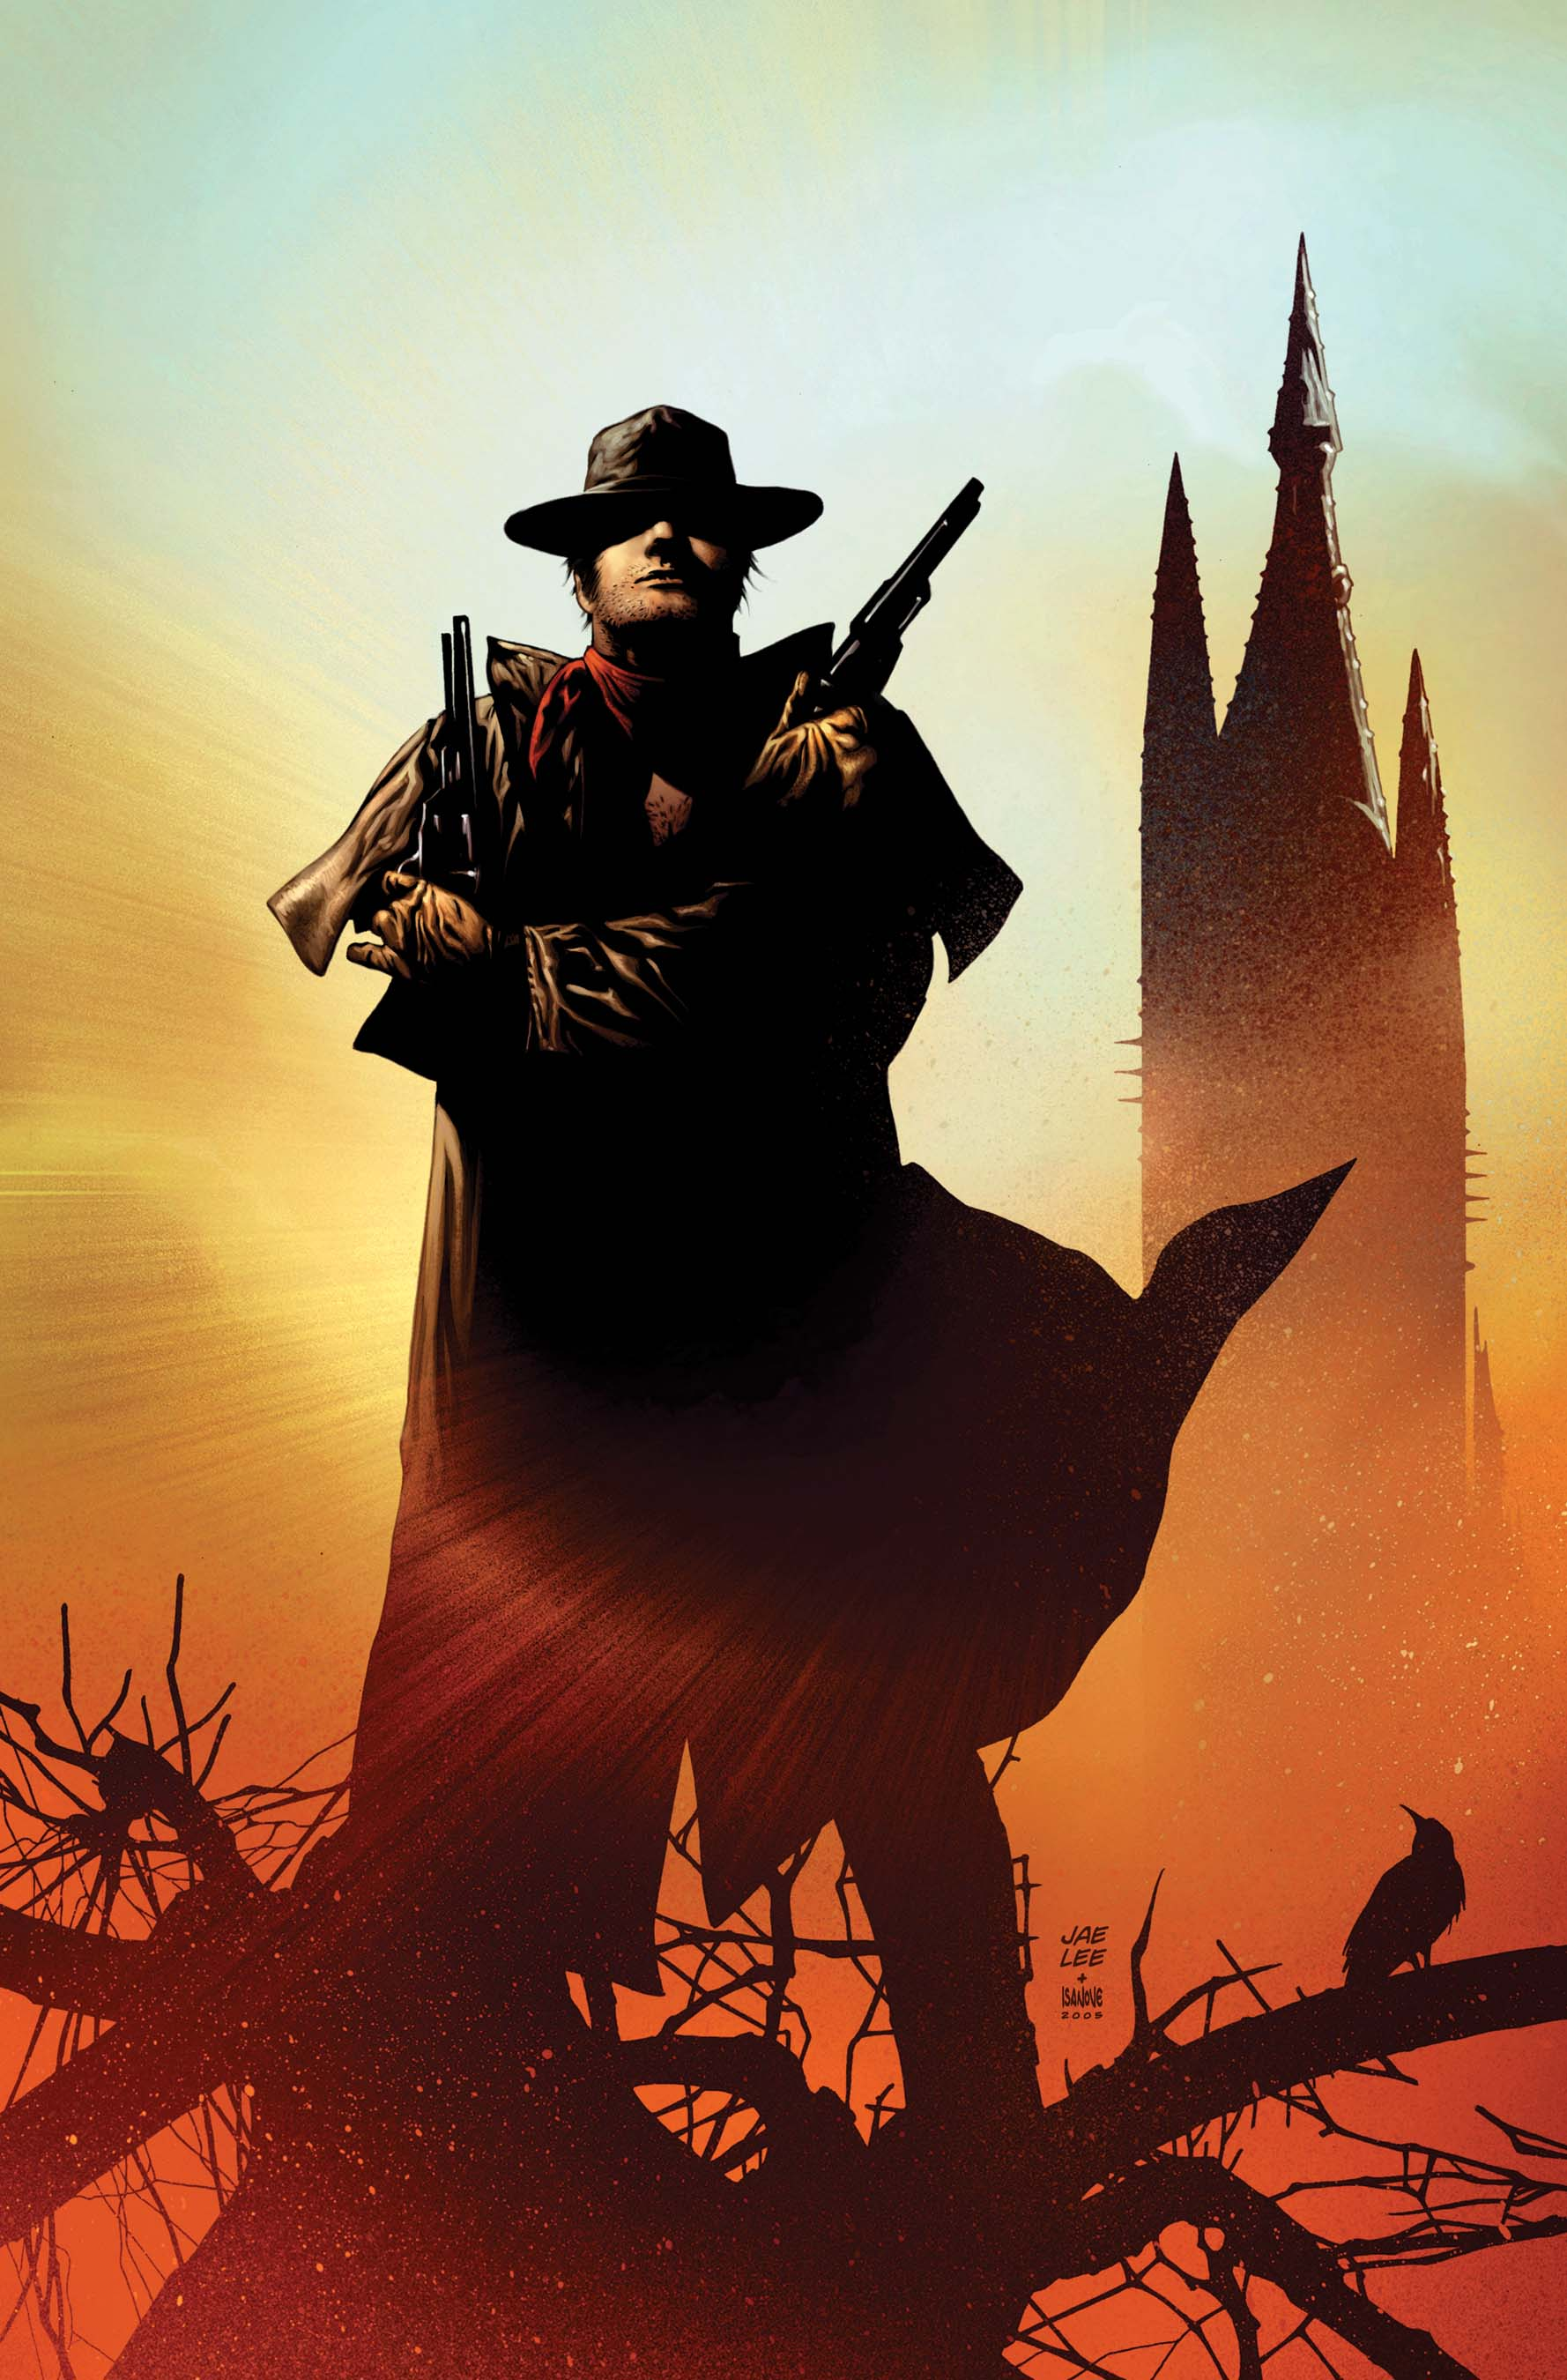 DARK TOWER: THE GUNSLINGER BORN MGC 1 (2011) #1